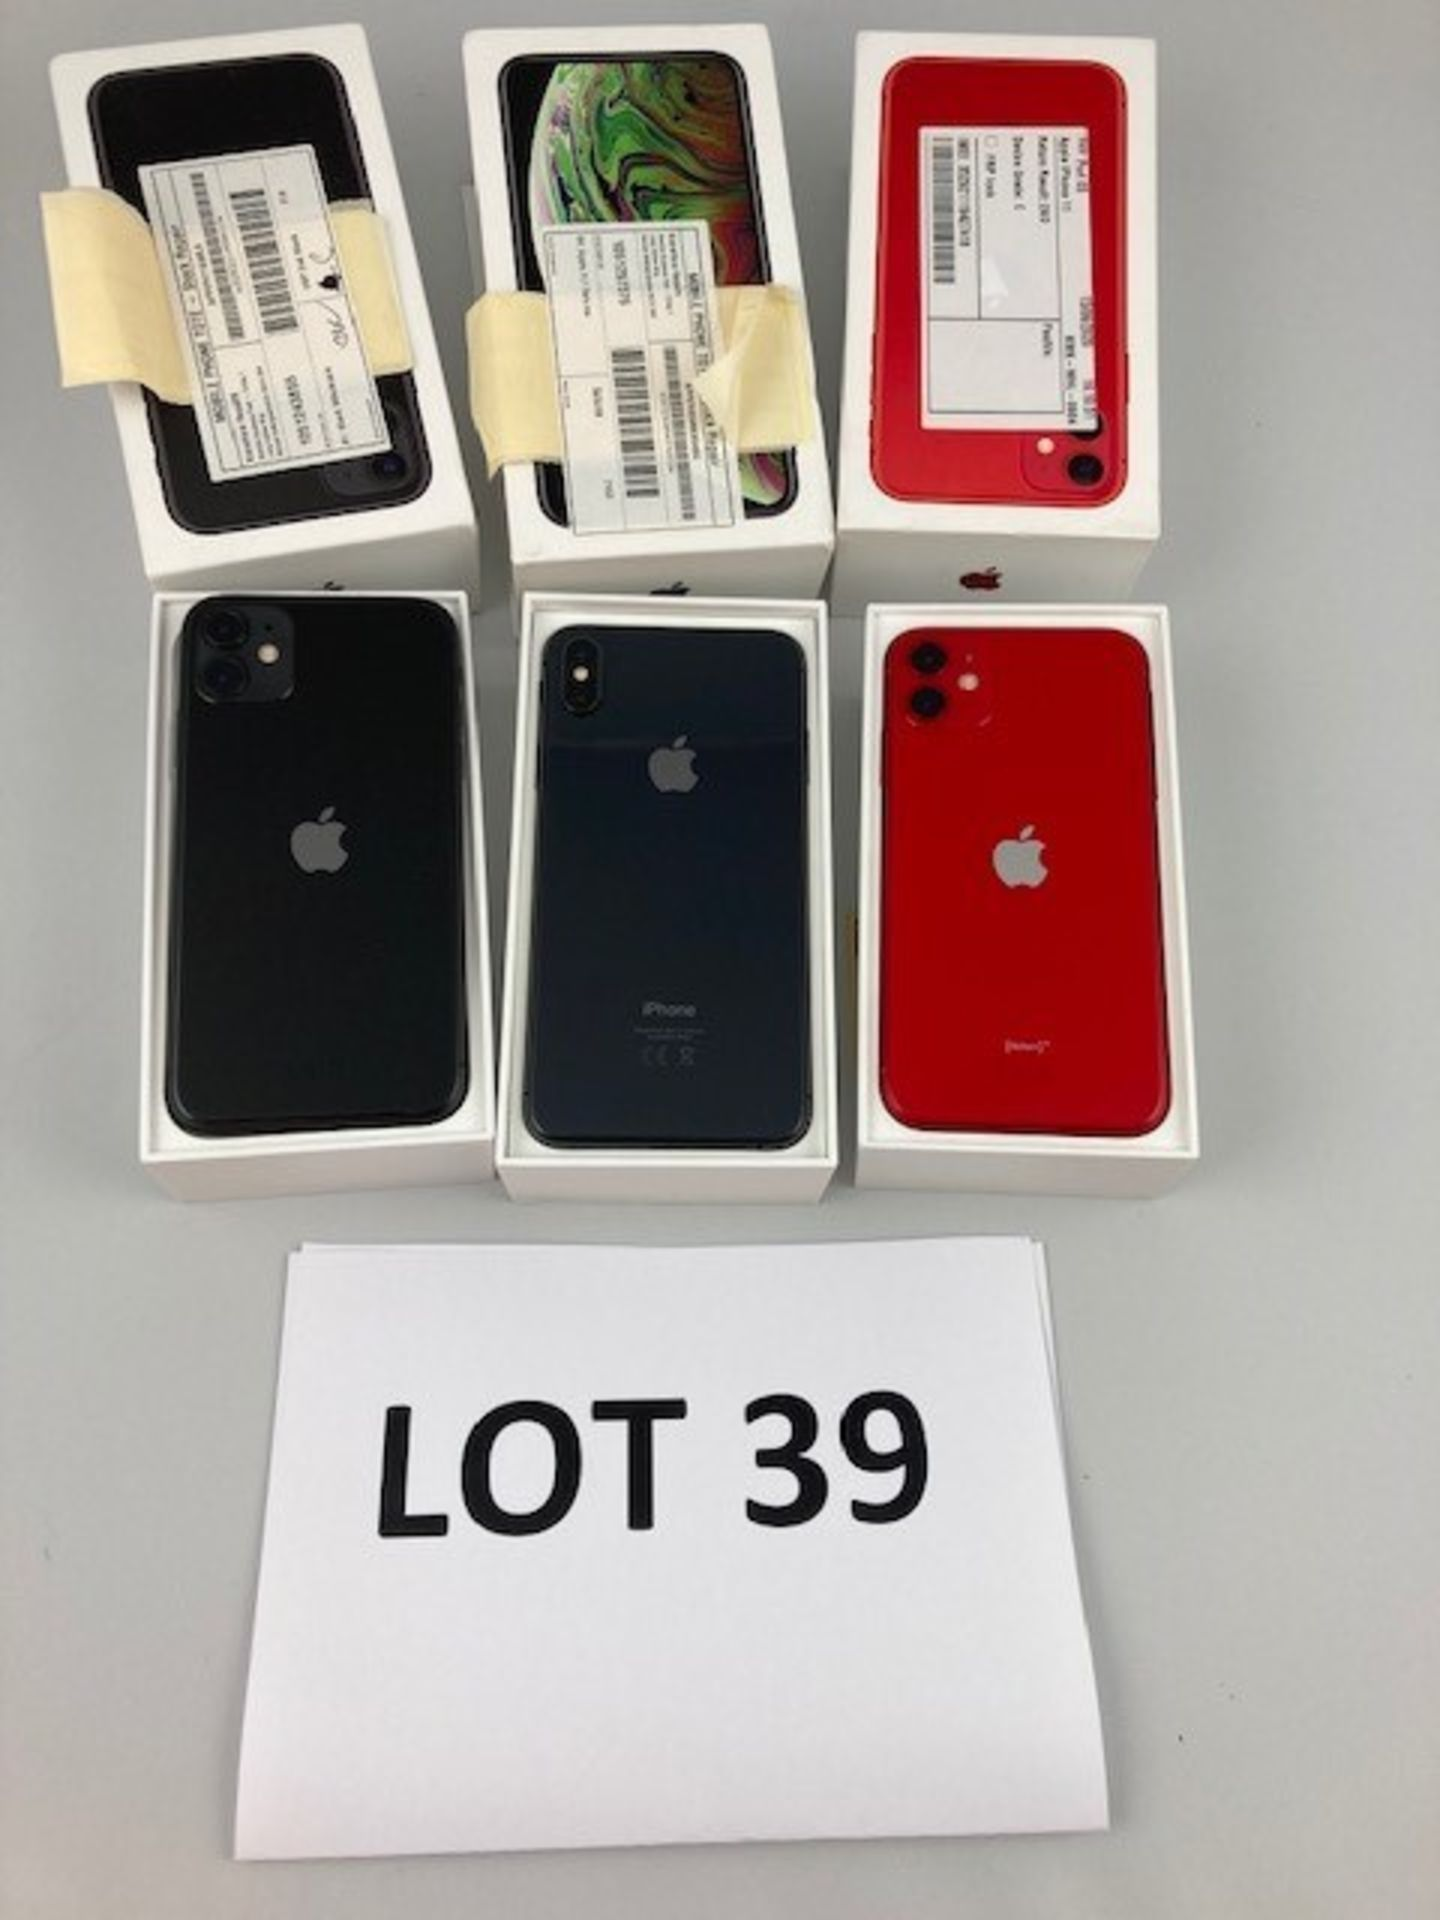 Lot 39 - Box of 3 Apple Iphones. Latest selling price £ *2,287